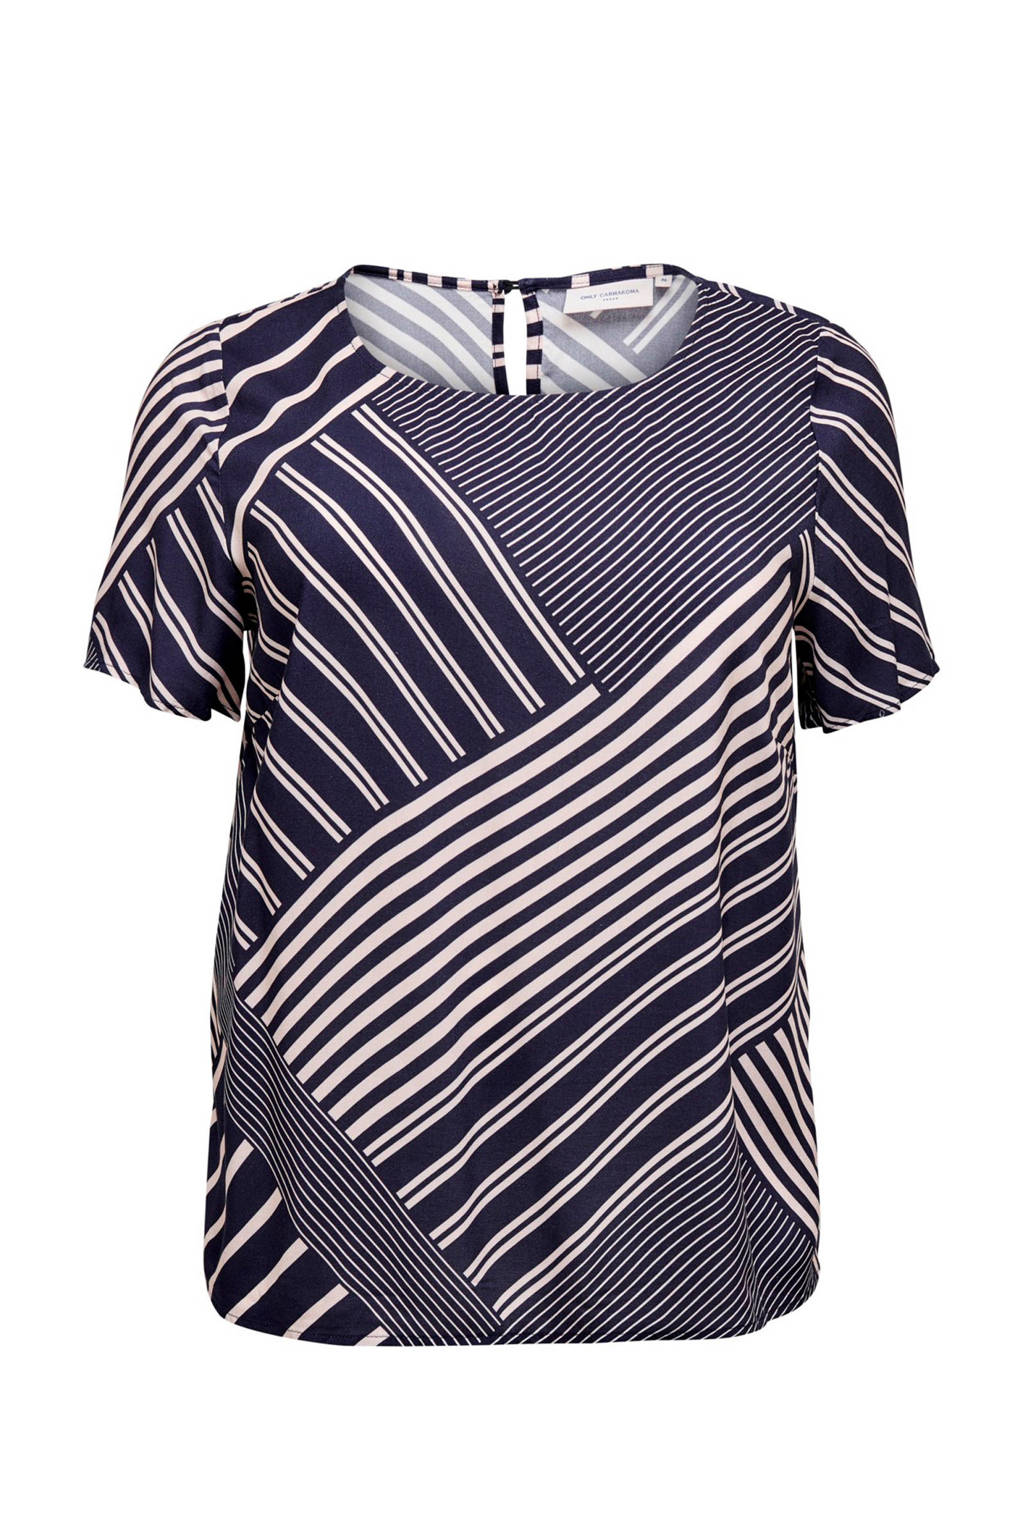 ONLY CARMAKOMA top met all over print blauw/wit, Blauw/wit